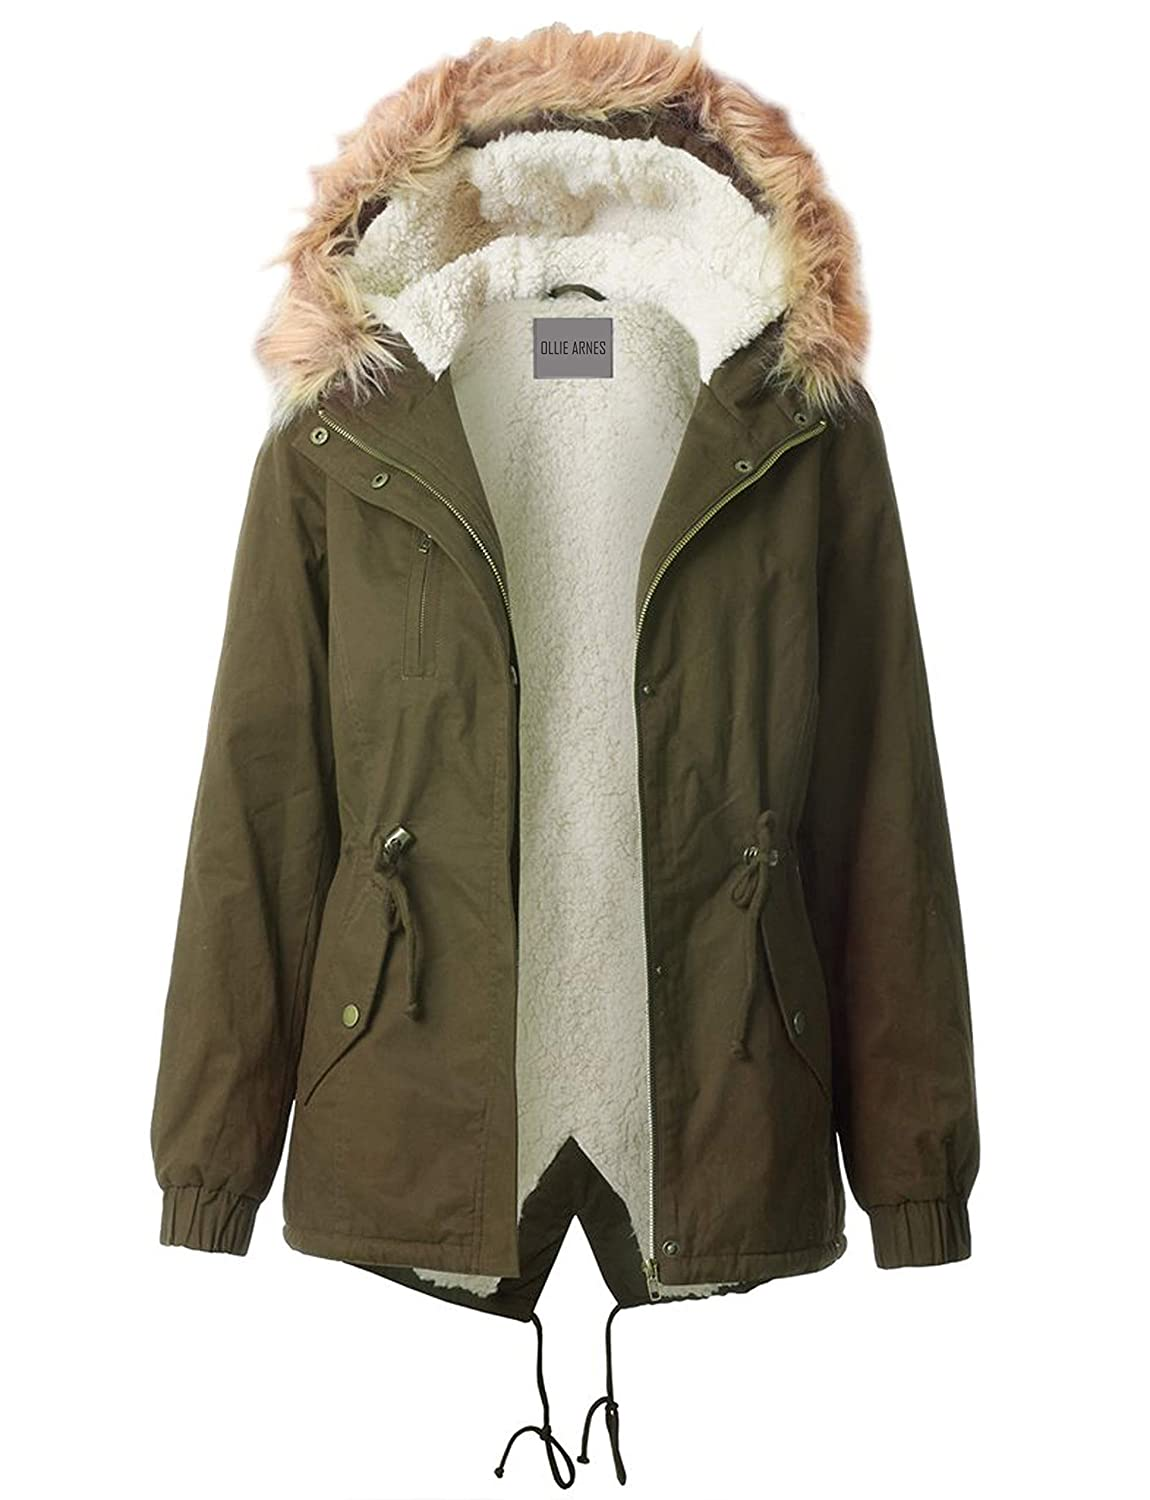 OLLIE ARNES Womens Quilted or Inner Fur Lined Sherpa Anorak Down Parka Jacket